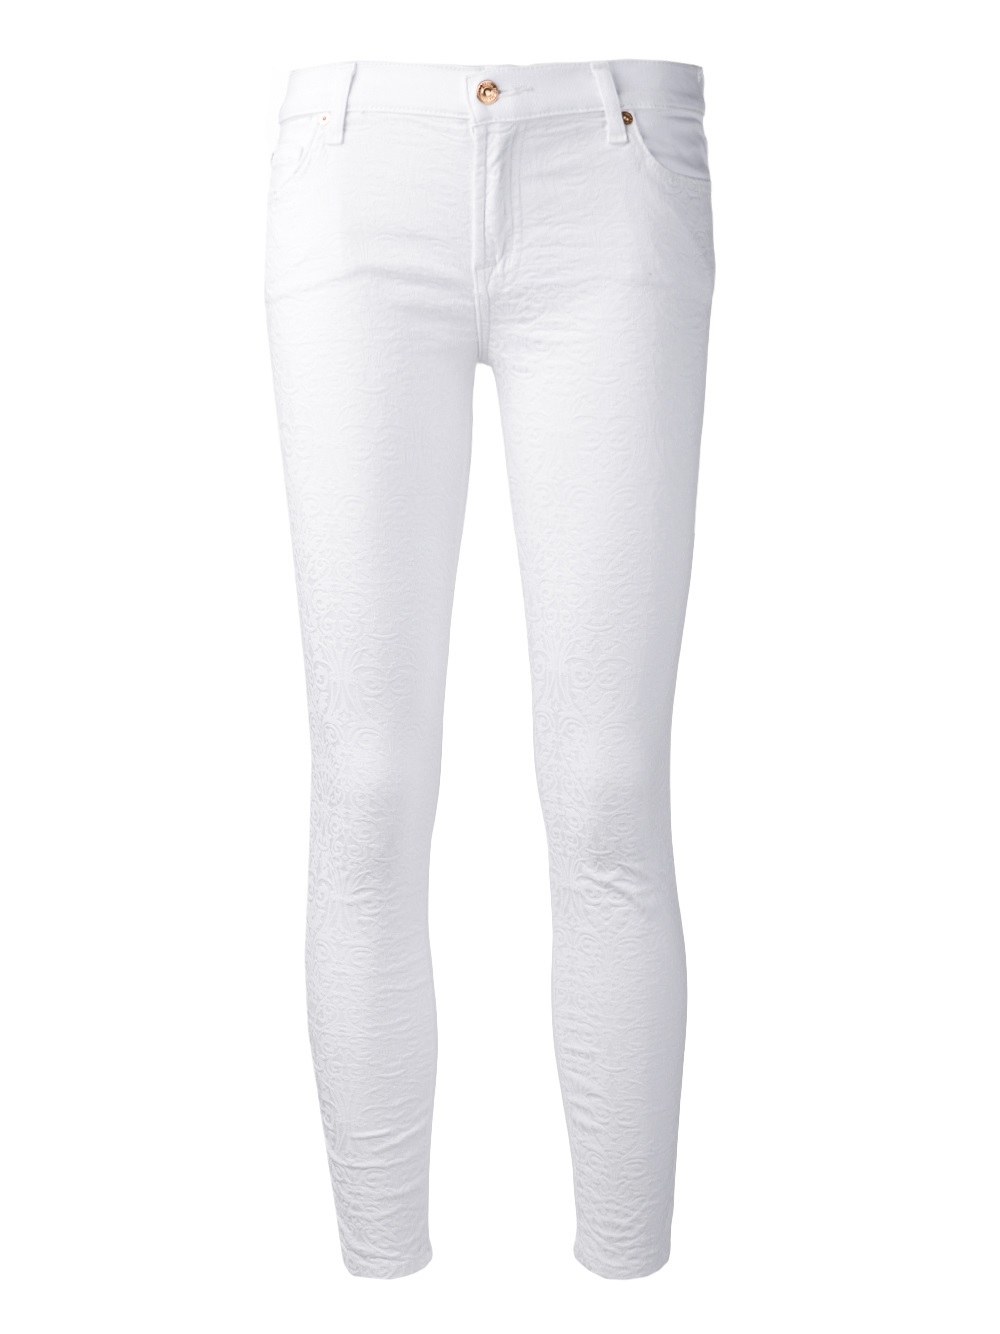 7 for all mankind Textured Front Skinny Jeans in White | Lyst